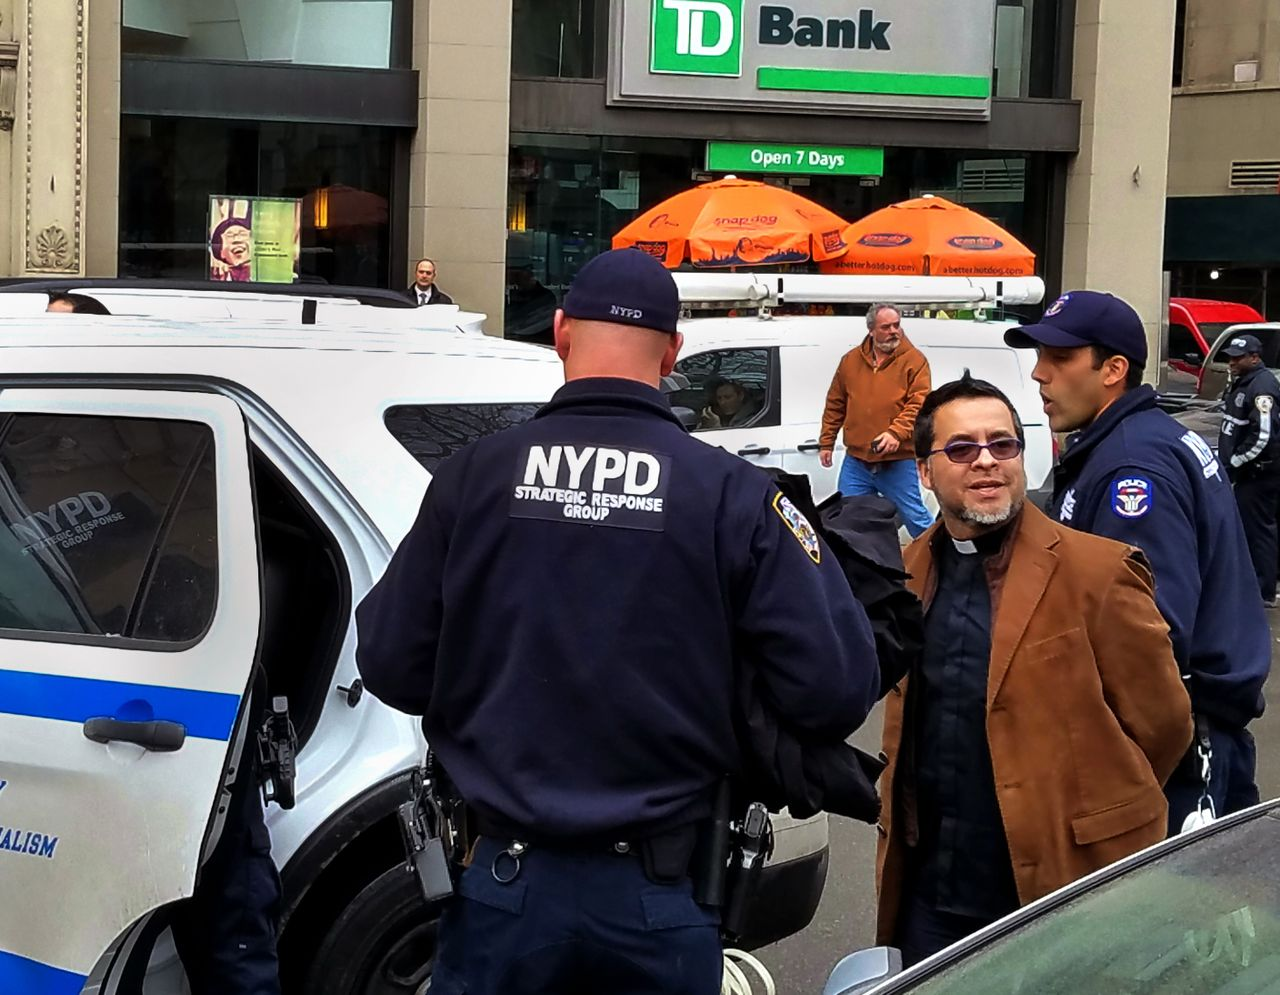 BK council member arrested during immigration rights rally